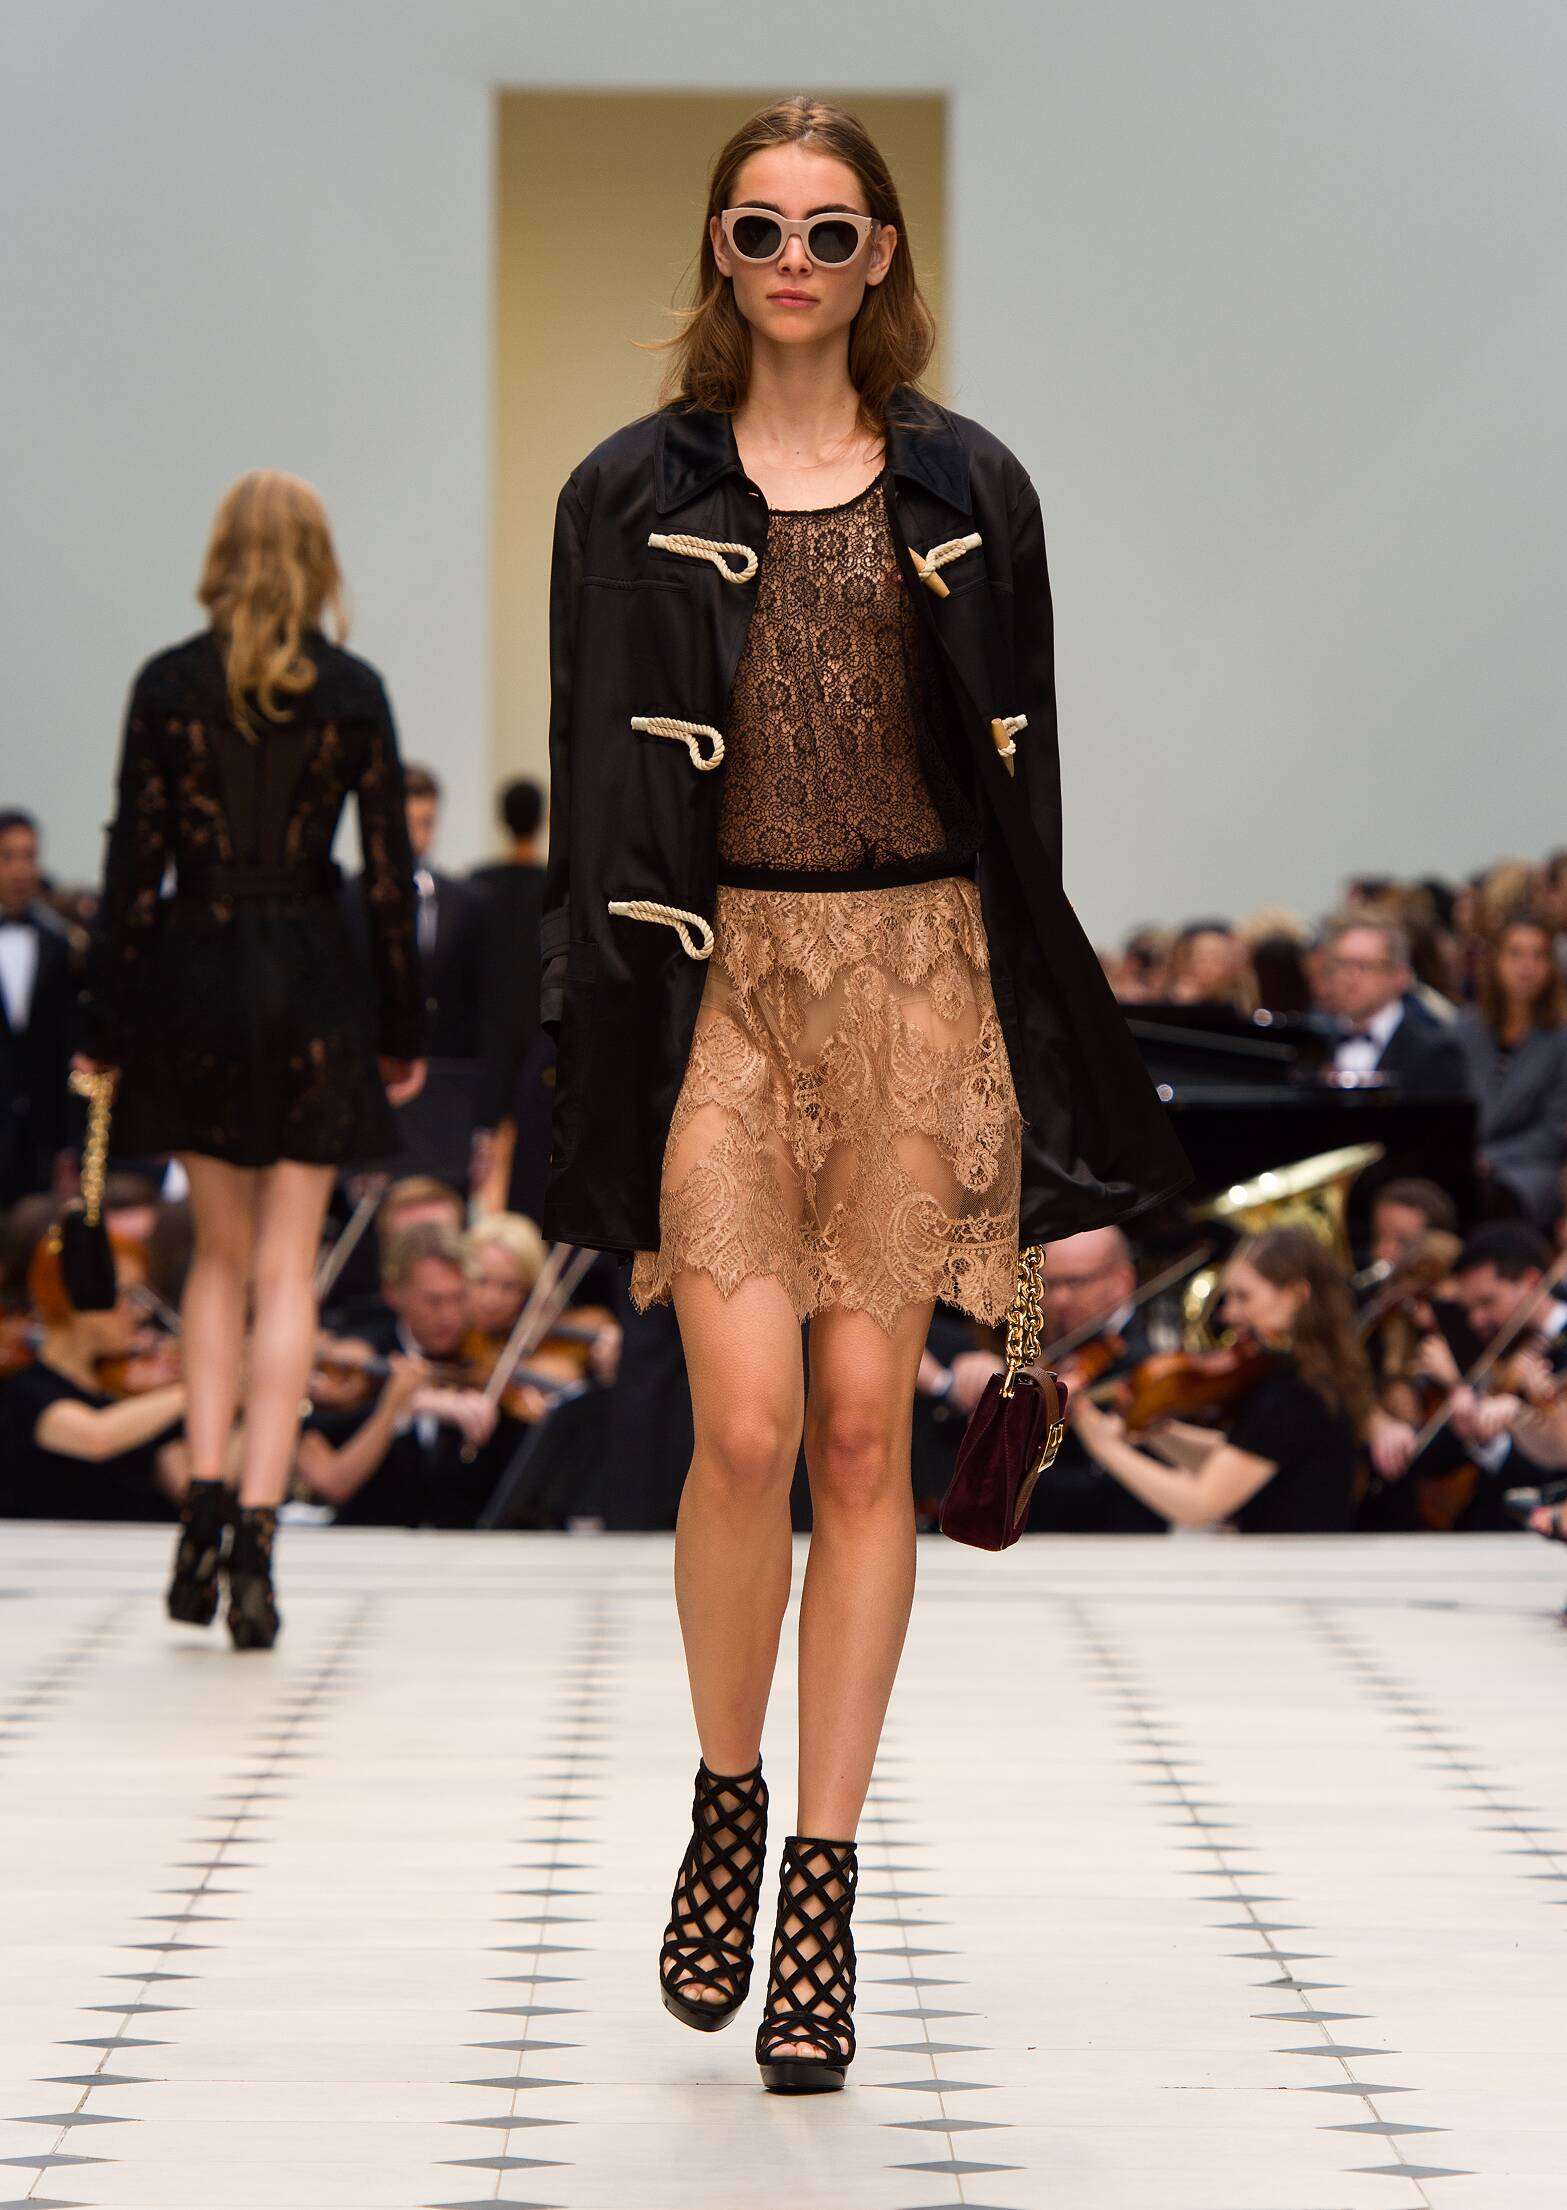 Fashion Model Burberry Prorsum Catwalk